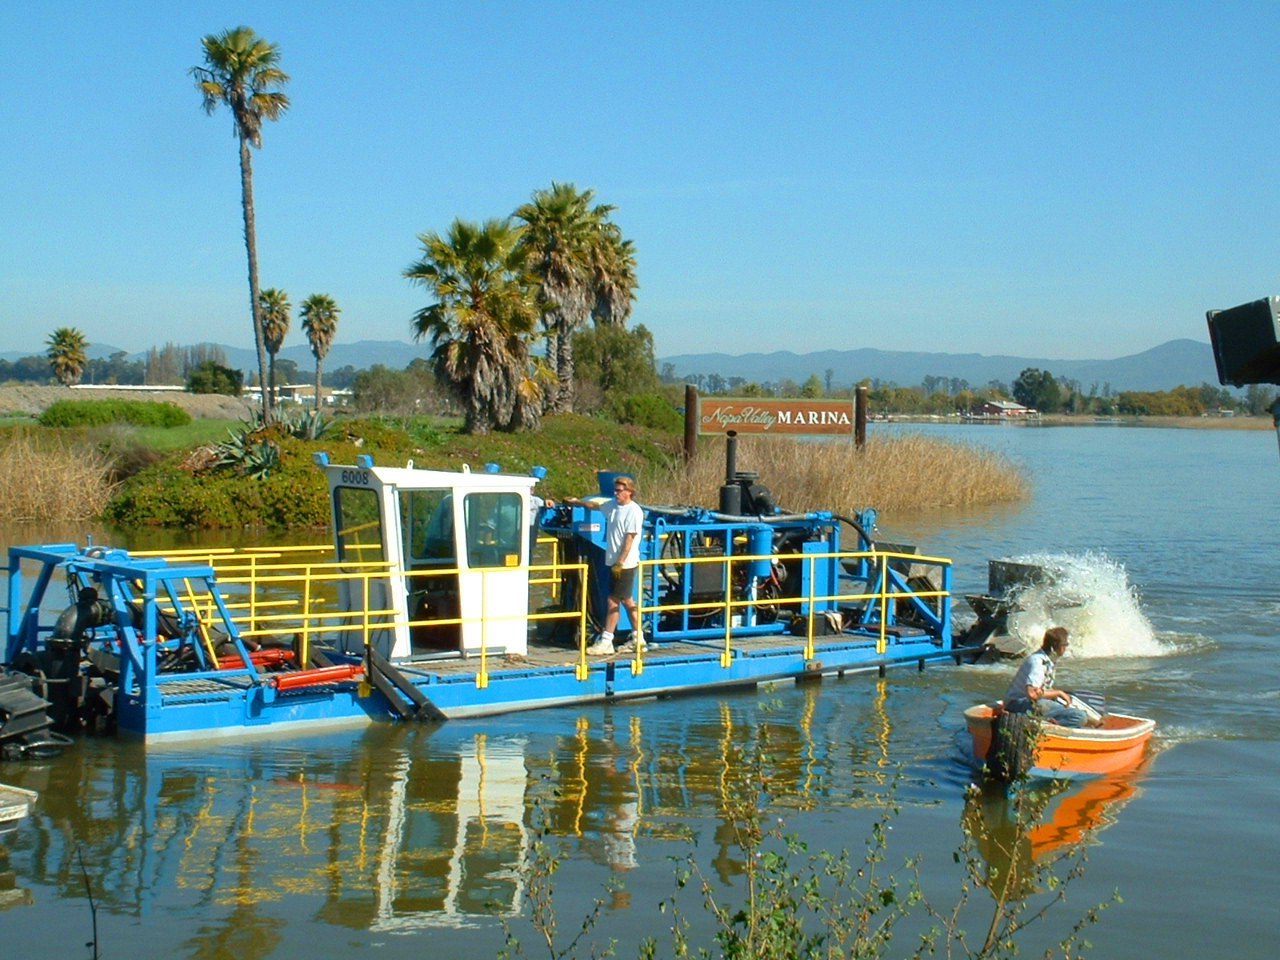 Our own self-propelled dredge